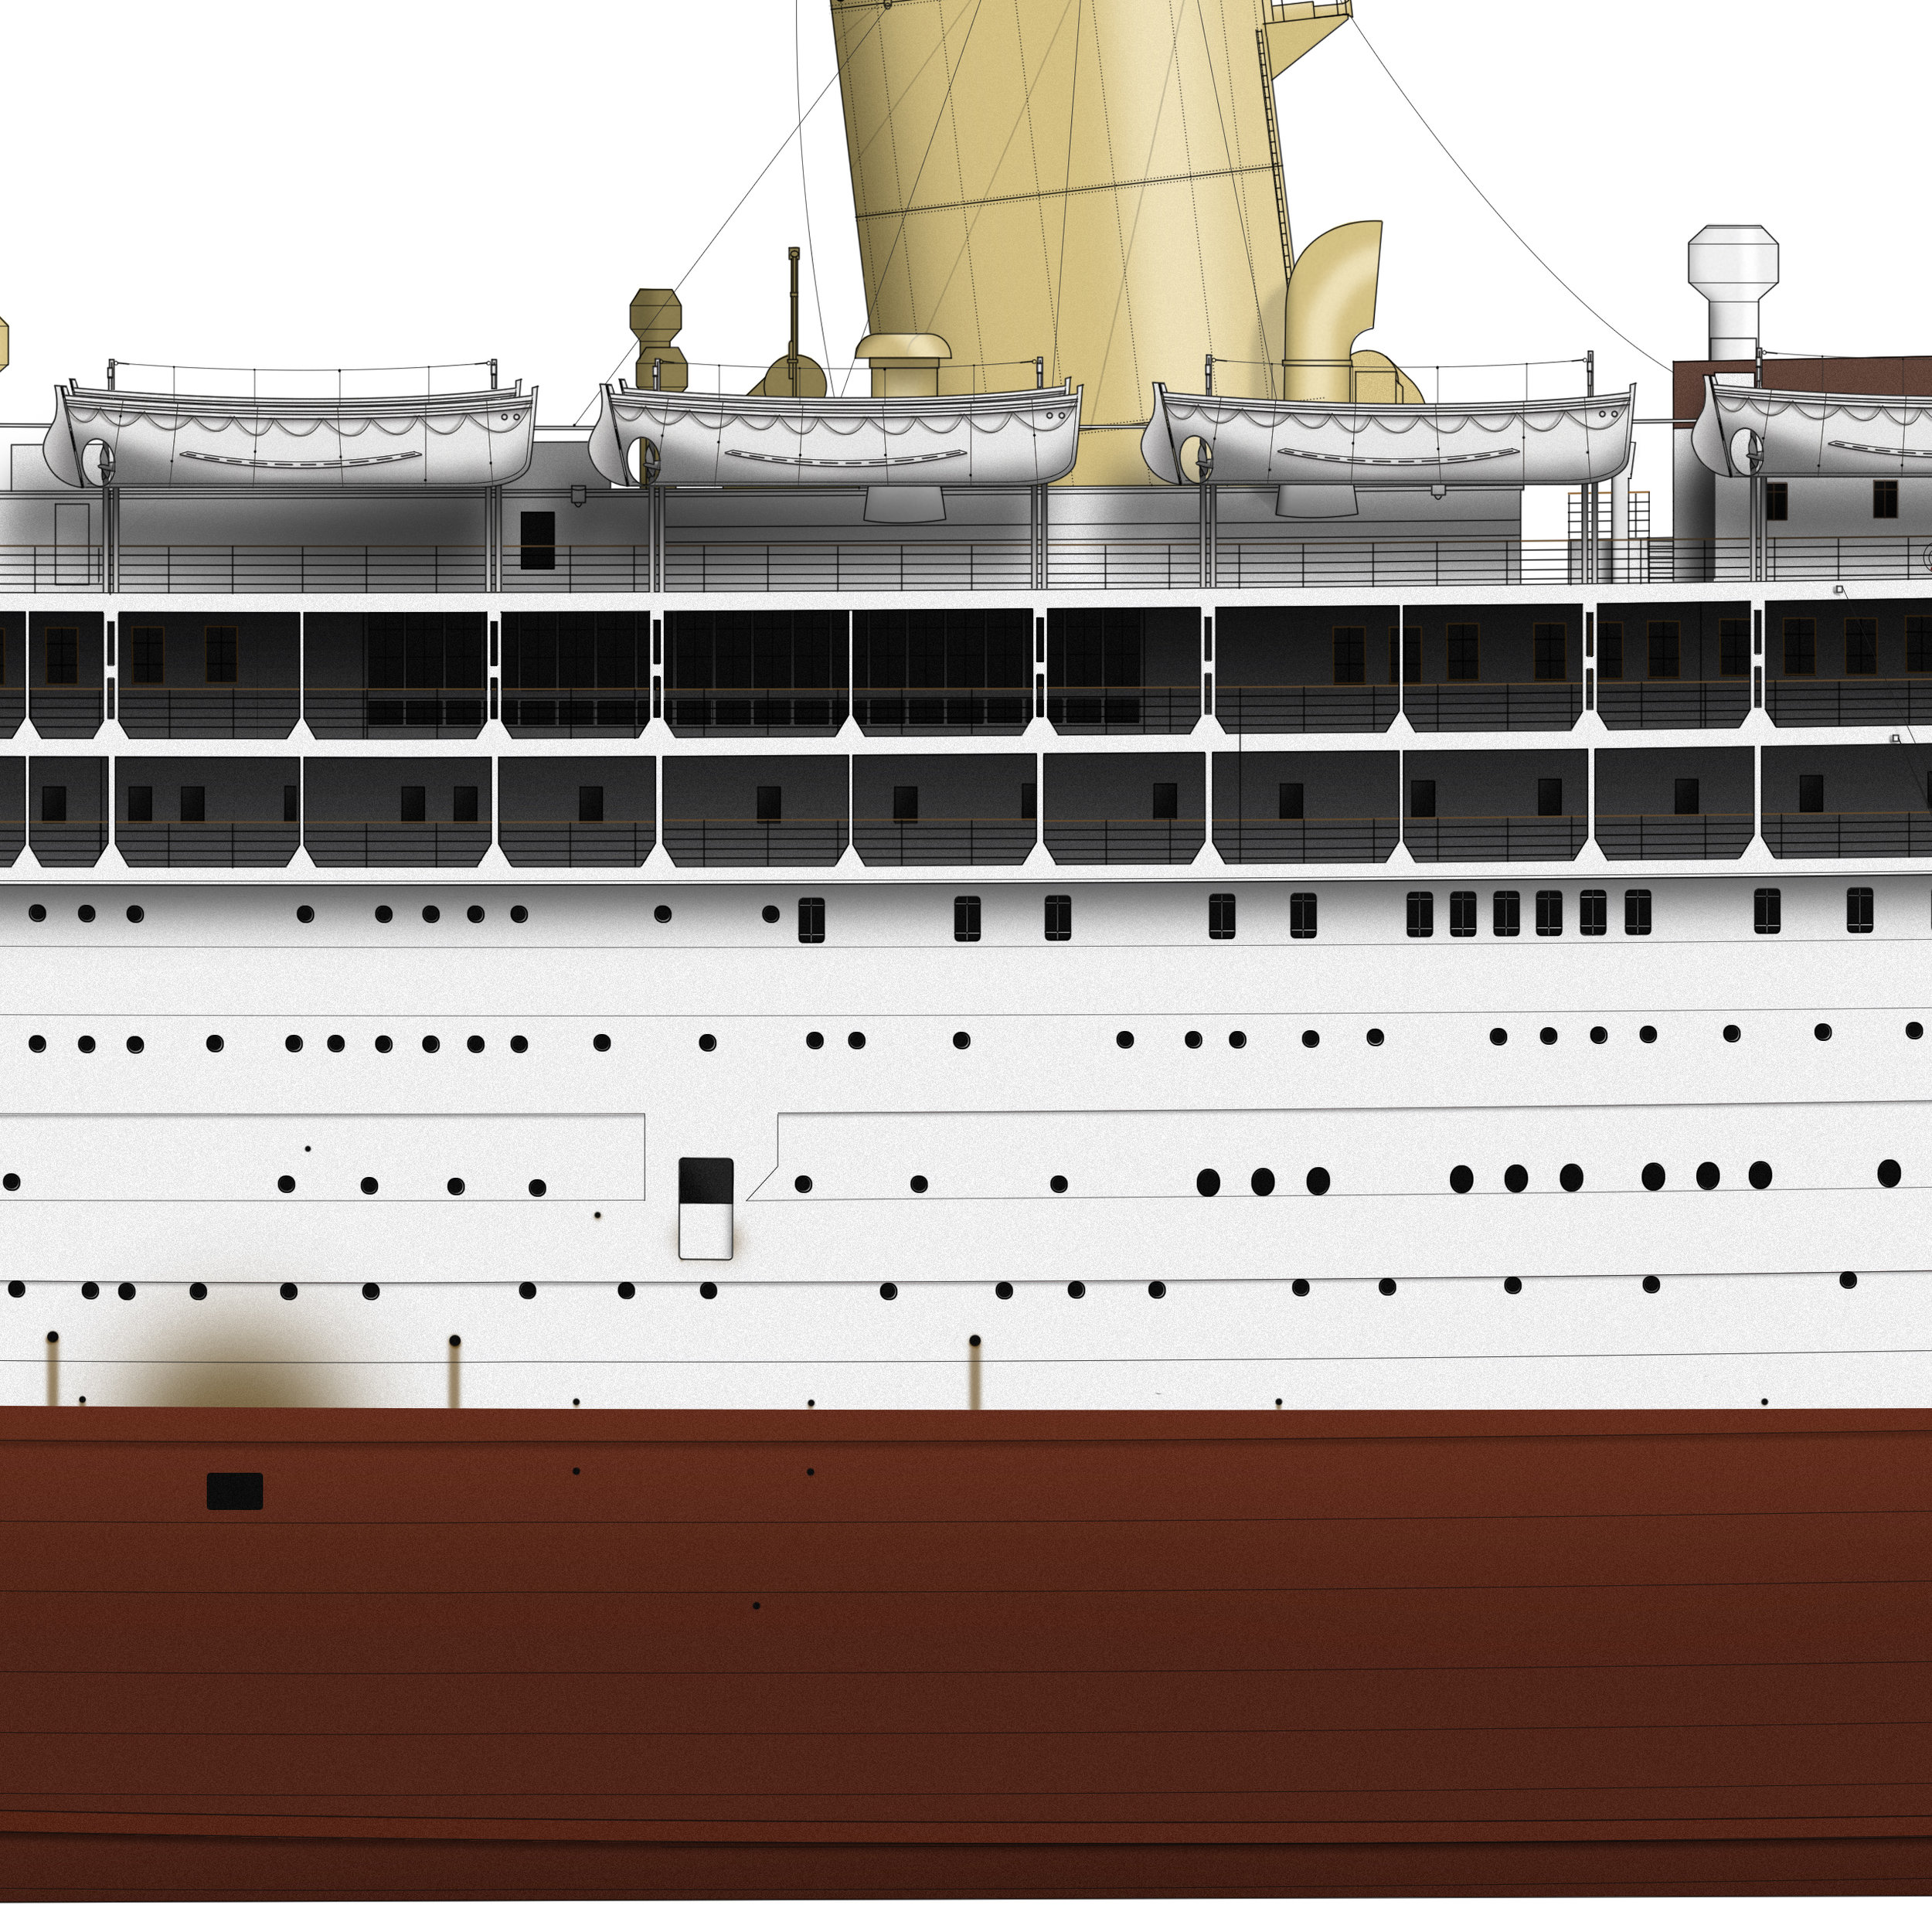 Details of TSS Strathmore drawing by Liner Designs.